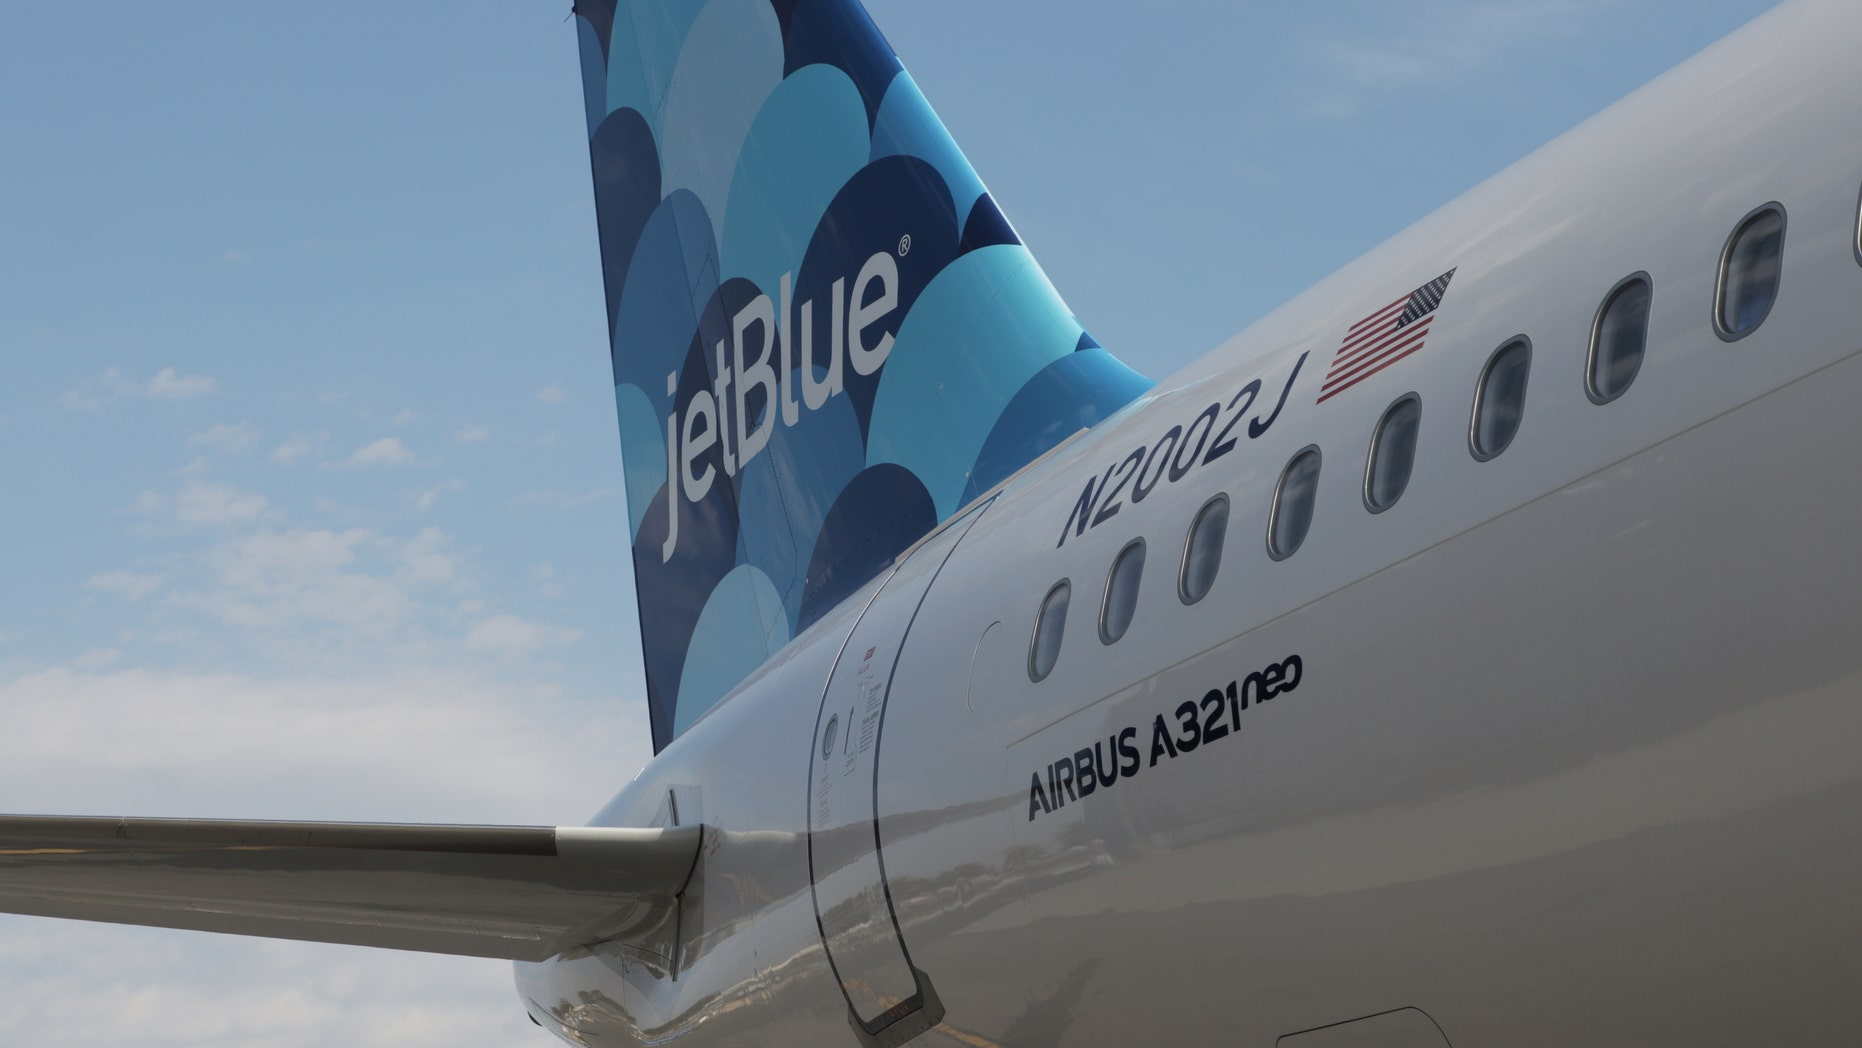 Westlake Legal Group jettblue-THUMB Ex-JetBlue employee faces 20 years in prison for scamming airline of nearly $1M Gerren Keith Gaynor fox-news/travel/general/airlines fox news fnc/travel fnc article 0f5c0217-dc65-51b7-9659-8d0332efff02